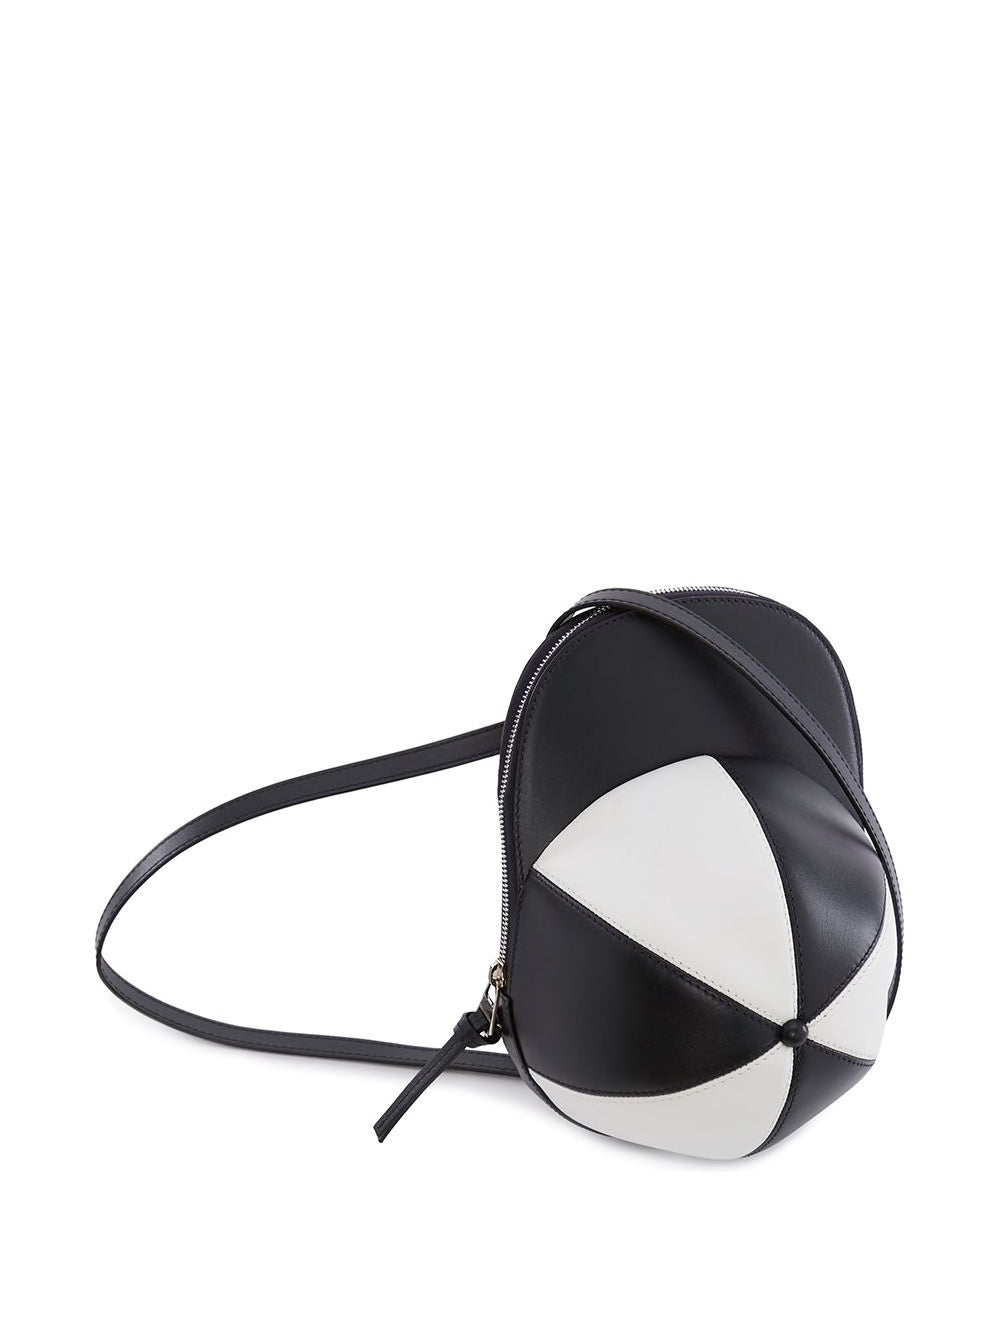 JW ANDERSON WOMEN CAP BAG